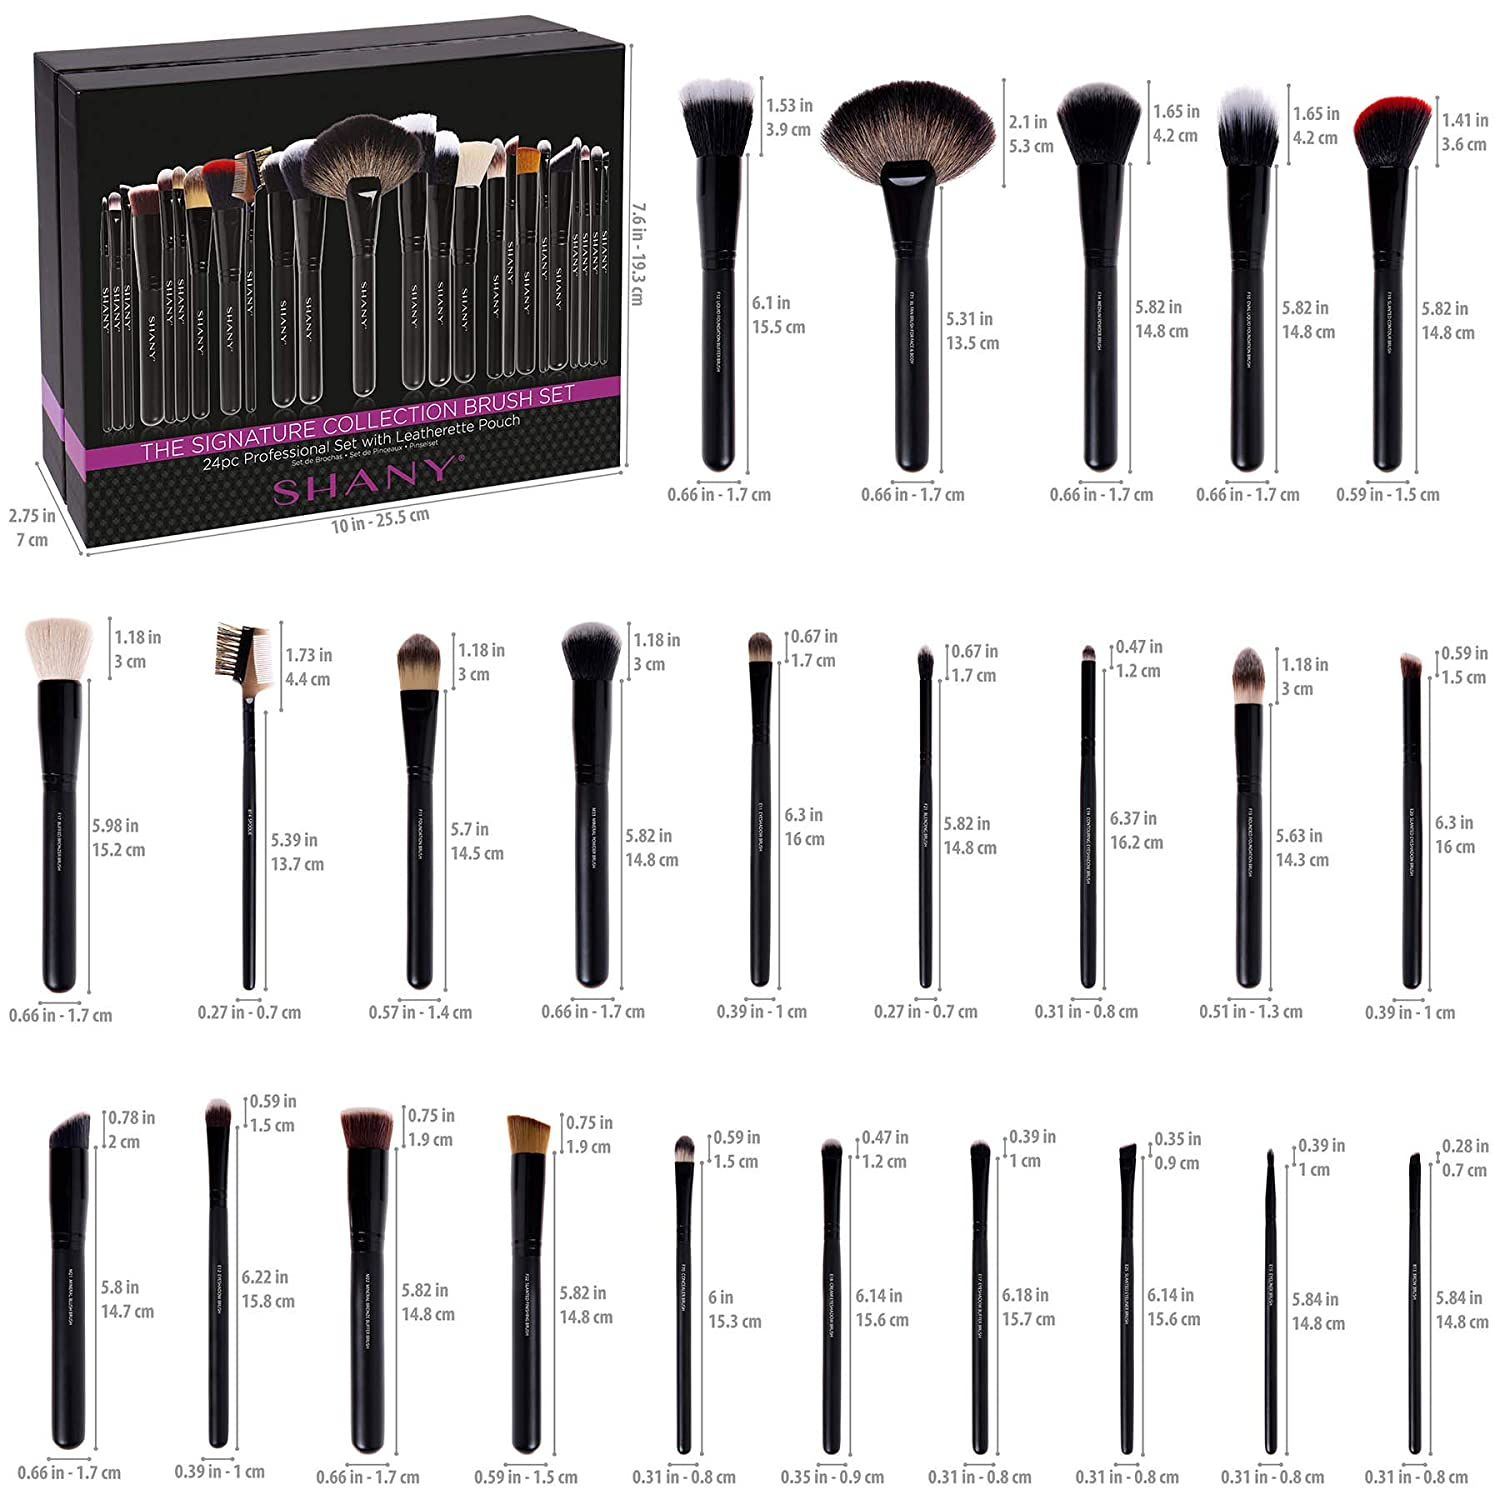 SHANY The Masterpiece Pro Signature Brush Set - 24pcs Handmade Natural/Synthetic Bristle with Wooden handle: SHANY: Beauty